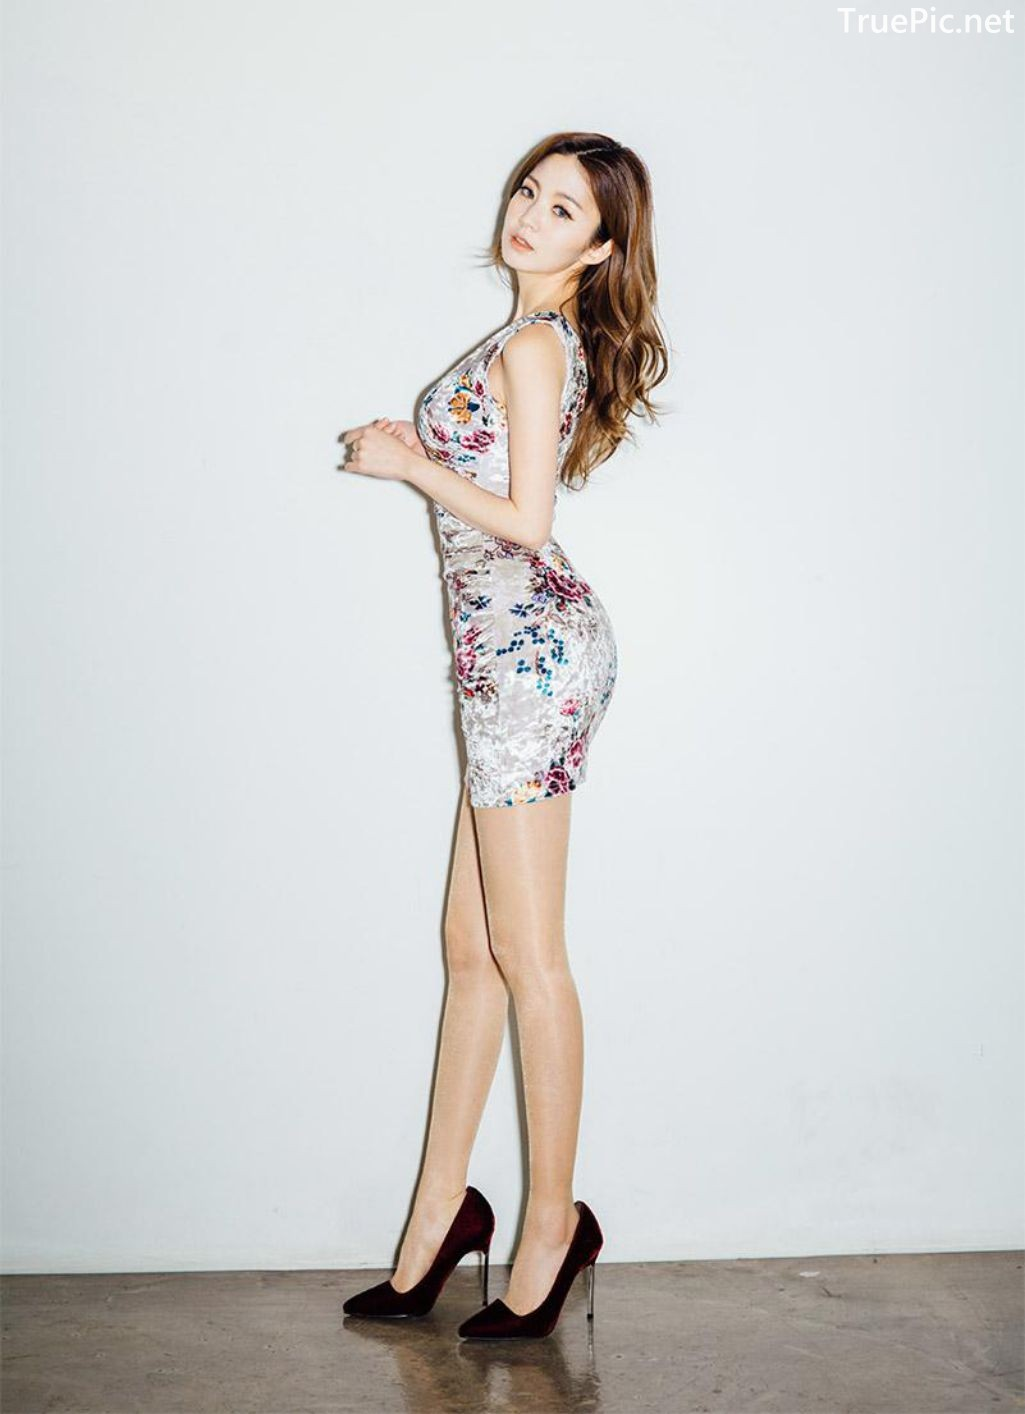 Image-Korean-Fashion-Model-Lee-Chae-Eun-Ready-For-The-Party-Evening-Wear-TruePic.net- Picture-4